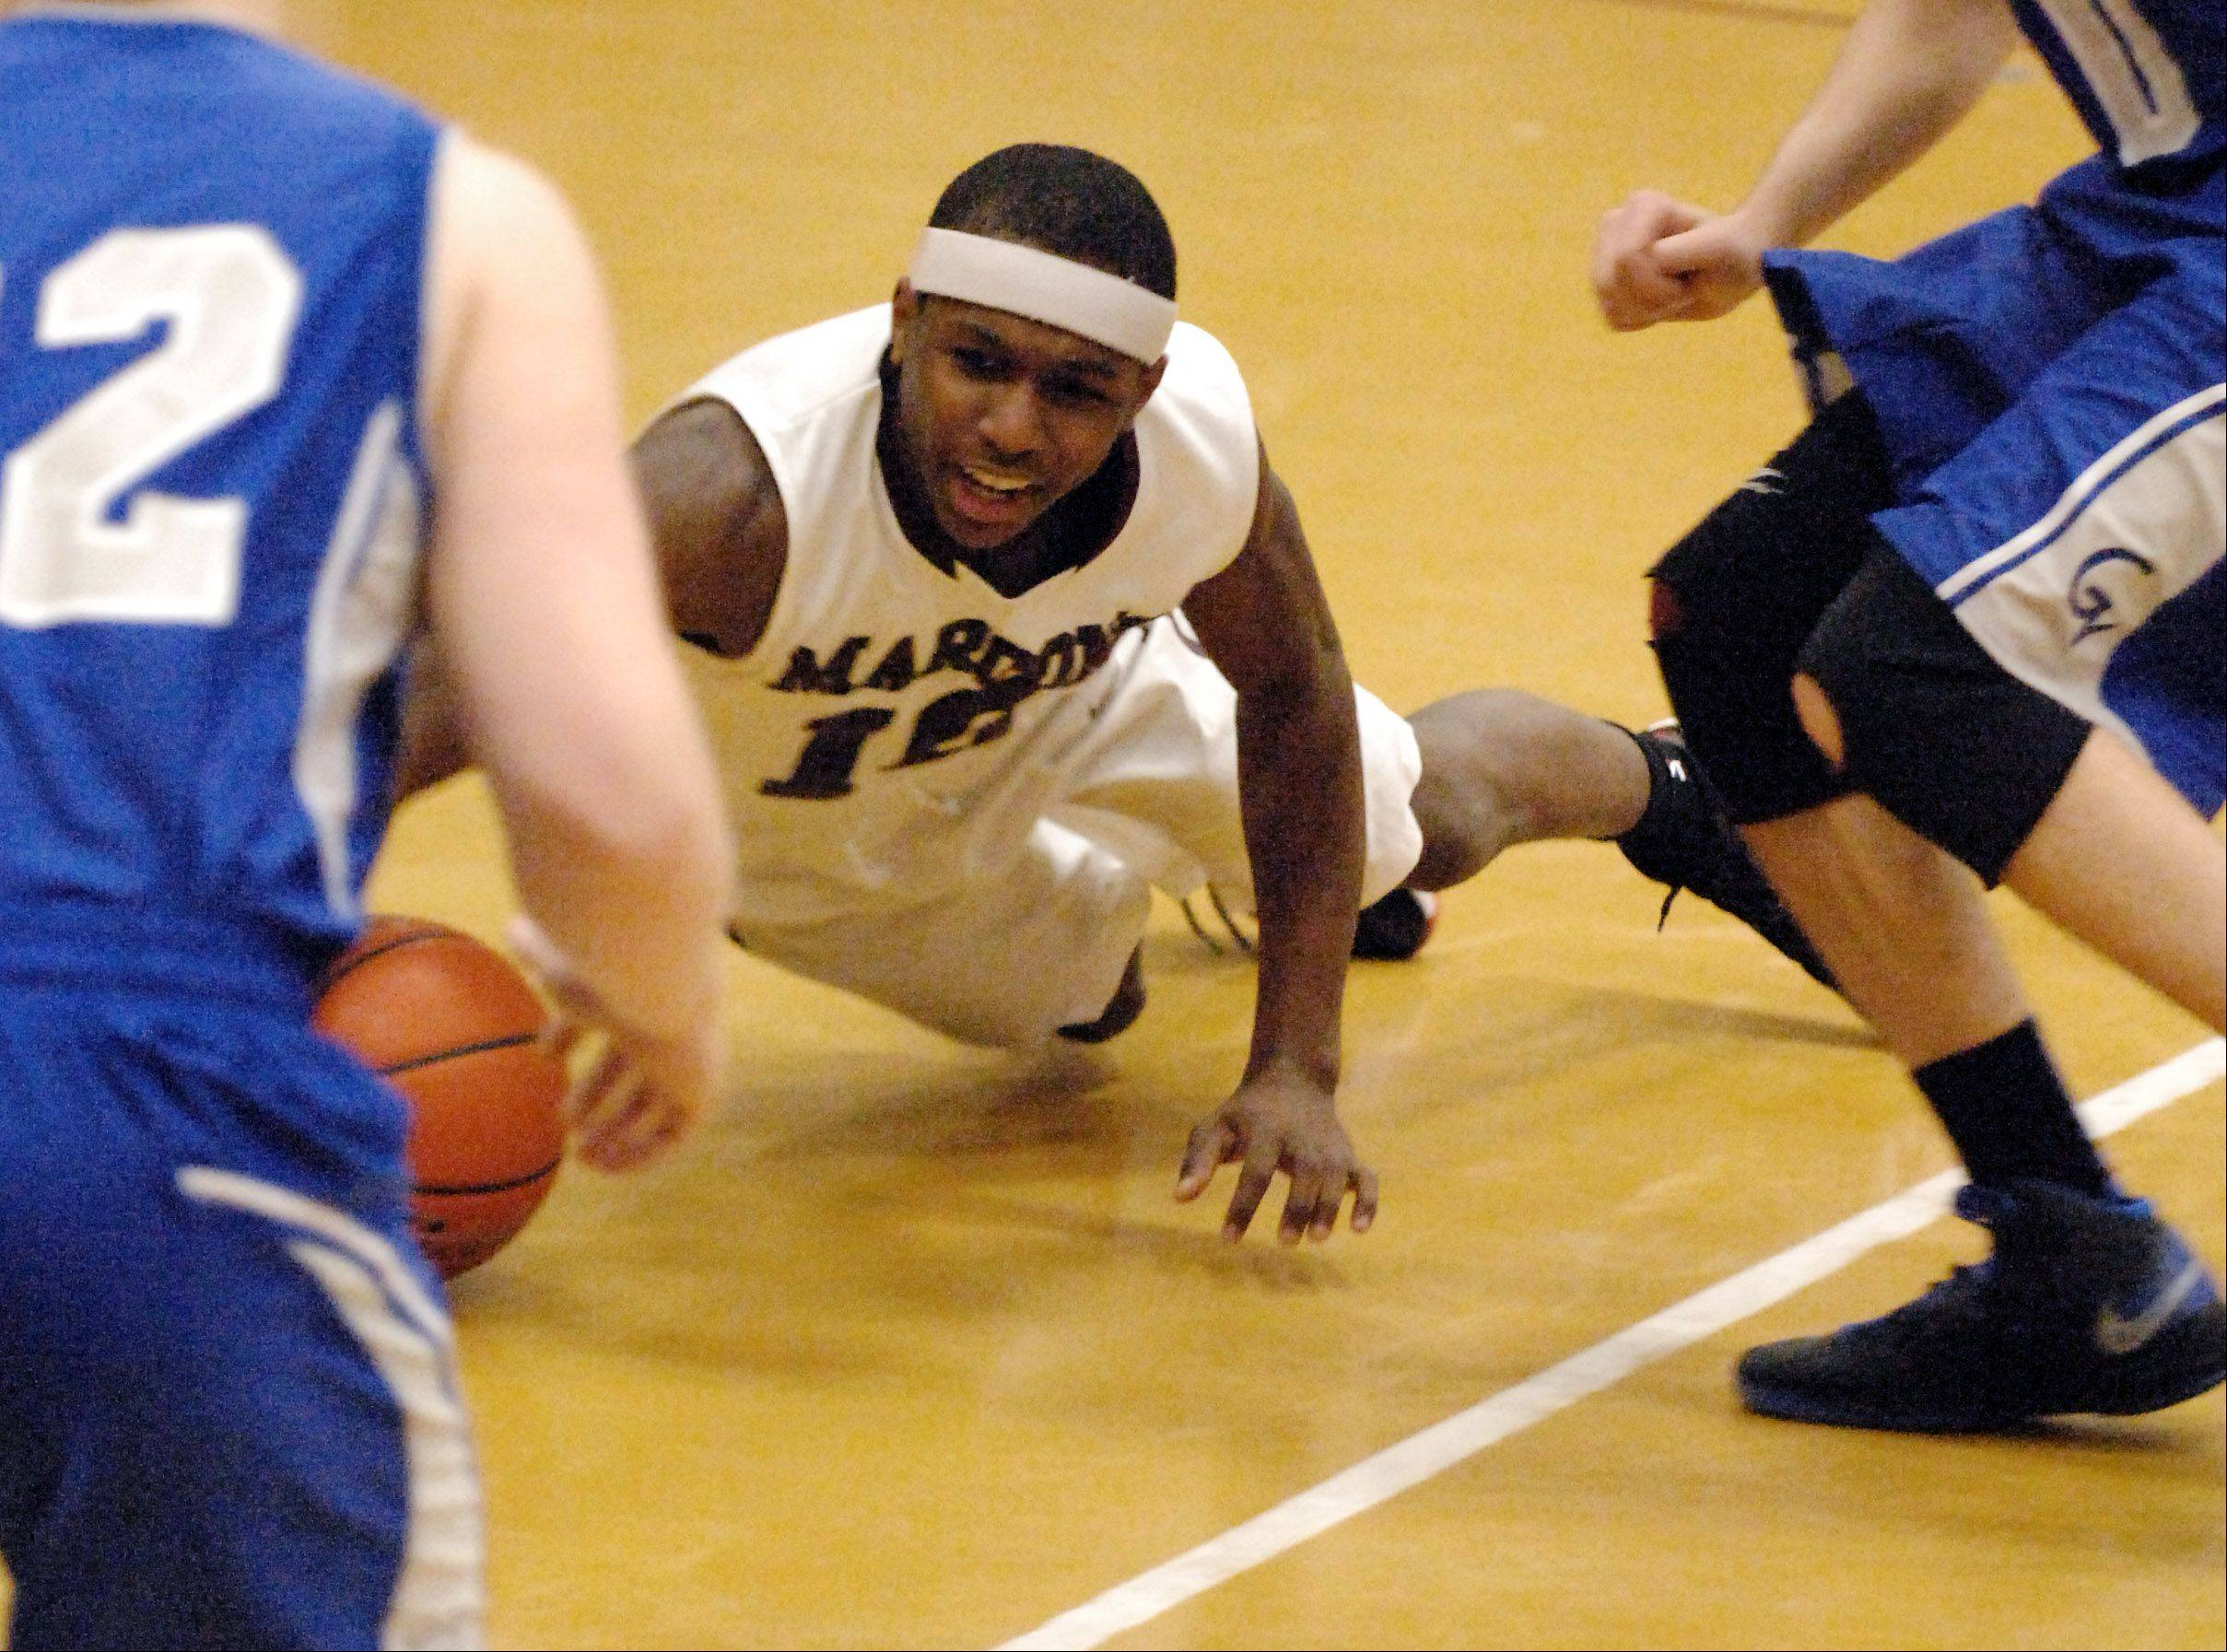 Elgin's Arie Williams dives for a loose ball against Geneva during Thursday's game in Elgin.